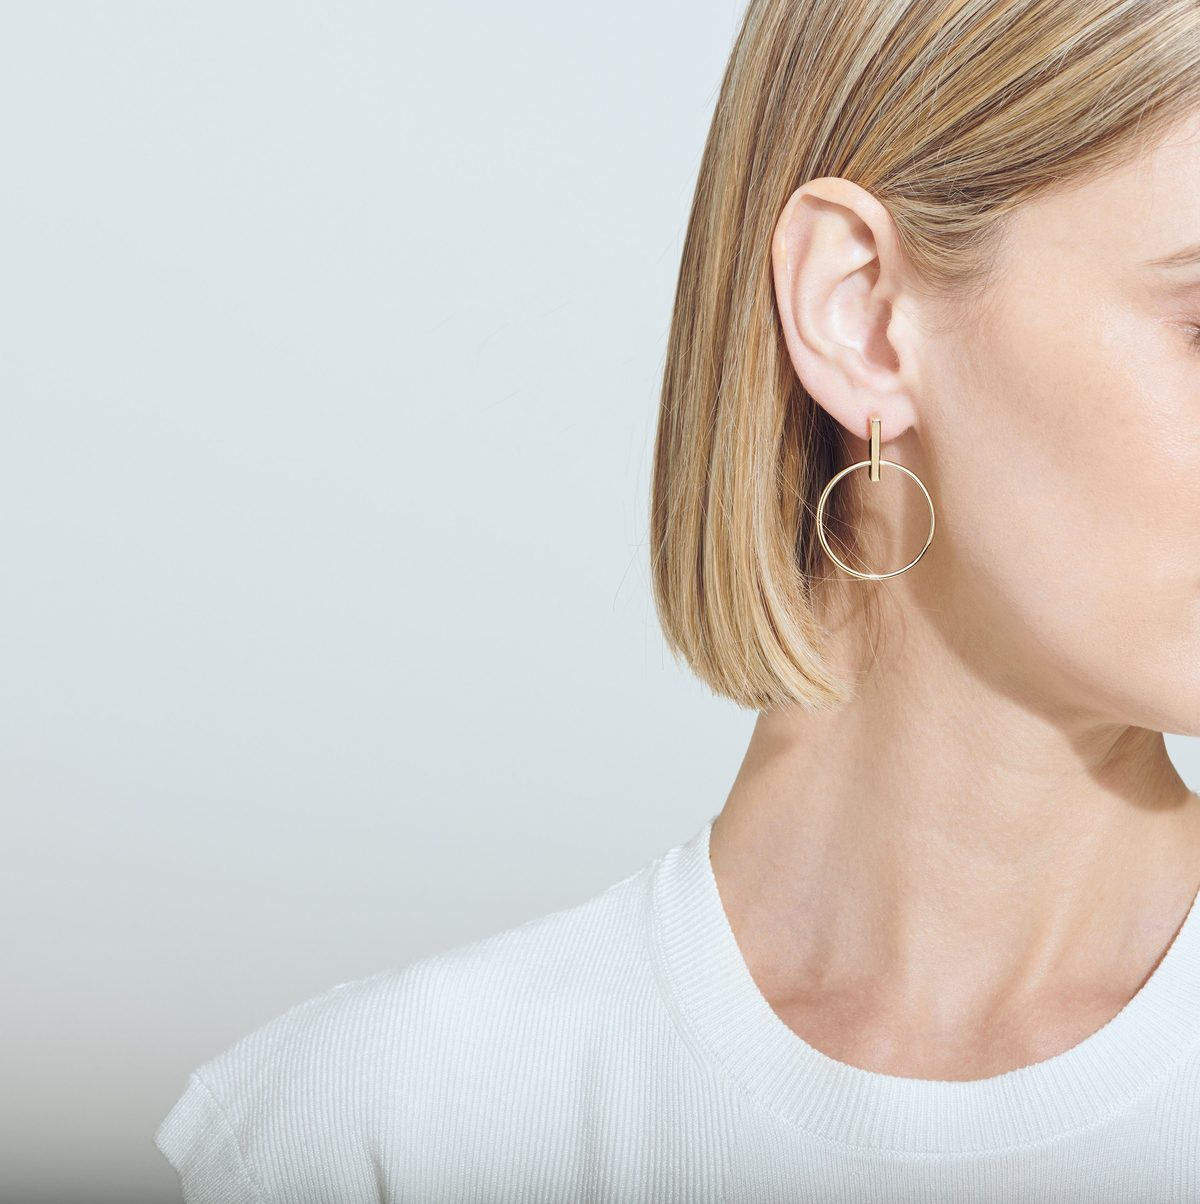 aurate - Circle Earrings in Vermeil / $180 for a pairThese earrings + your favorite chunky sweater = the perfect fall pairing. Not to mention that they're made from ethical solid gold from conflict-free suppliers.